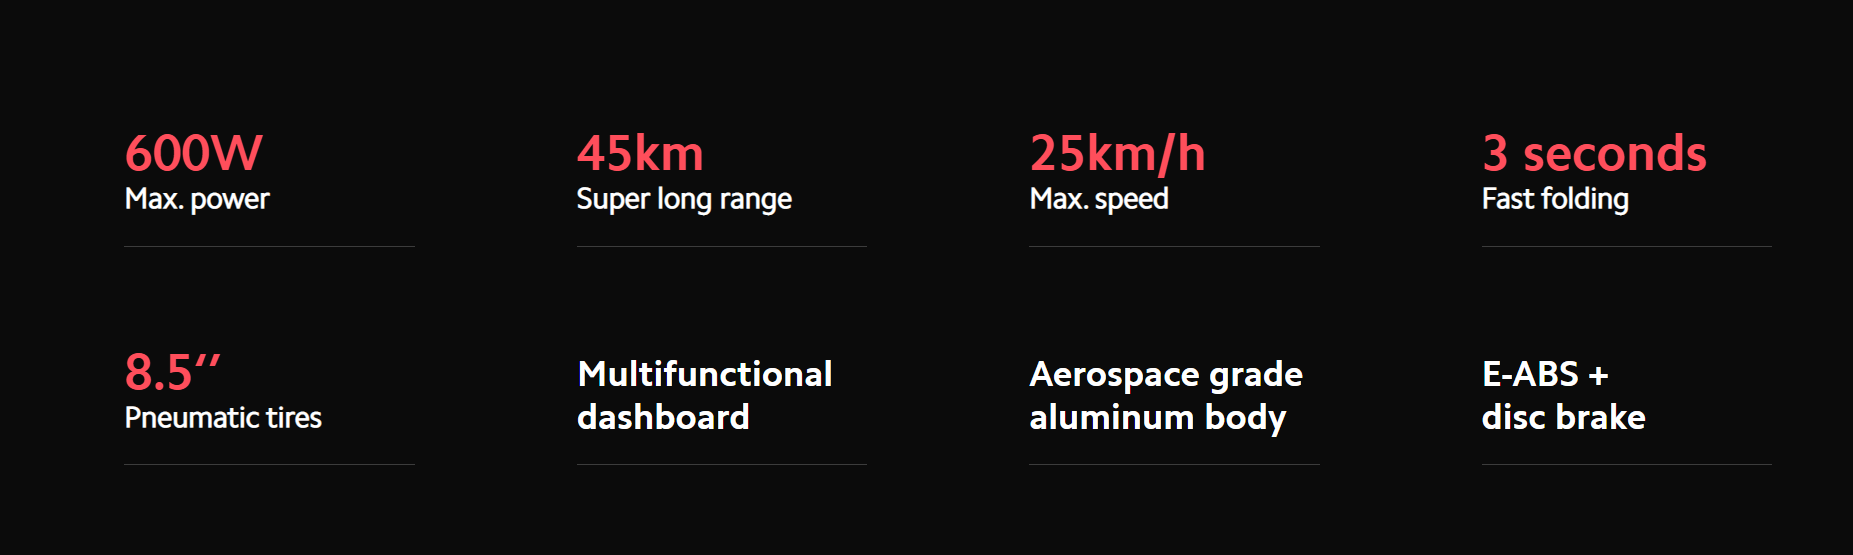 2020 Xiaomi Mi Electric Scooter PRO 2 MIJIA Smart E-Scooter Lite Skateboard Mini Foldable Hoverboard Patinete Electrico Adult